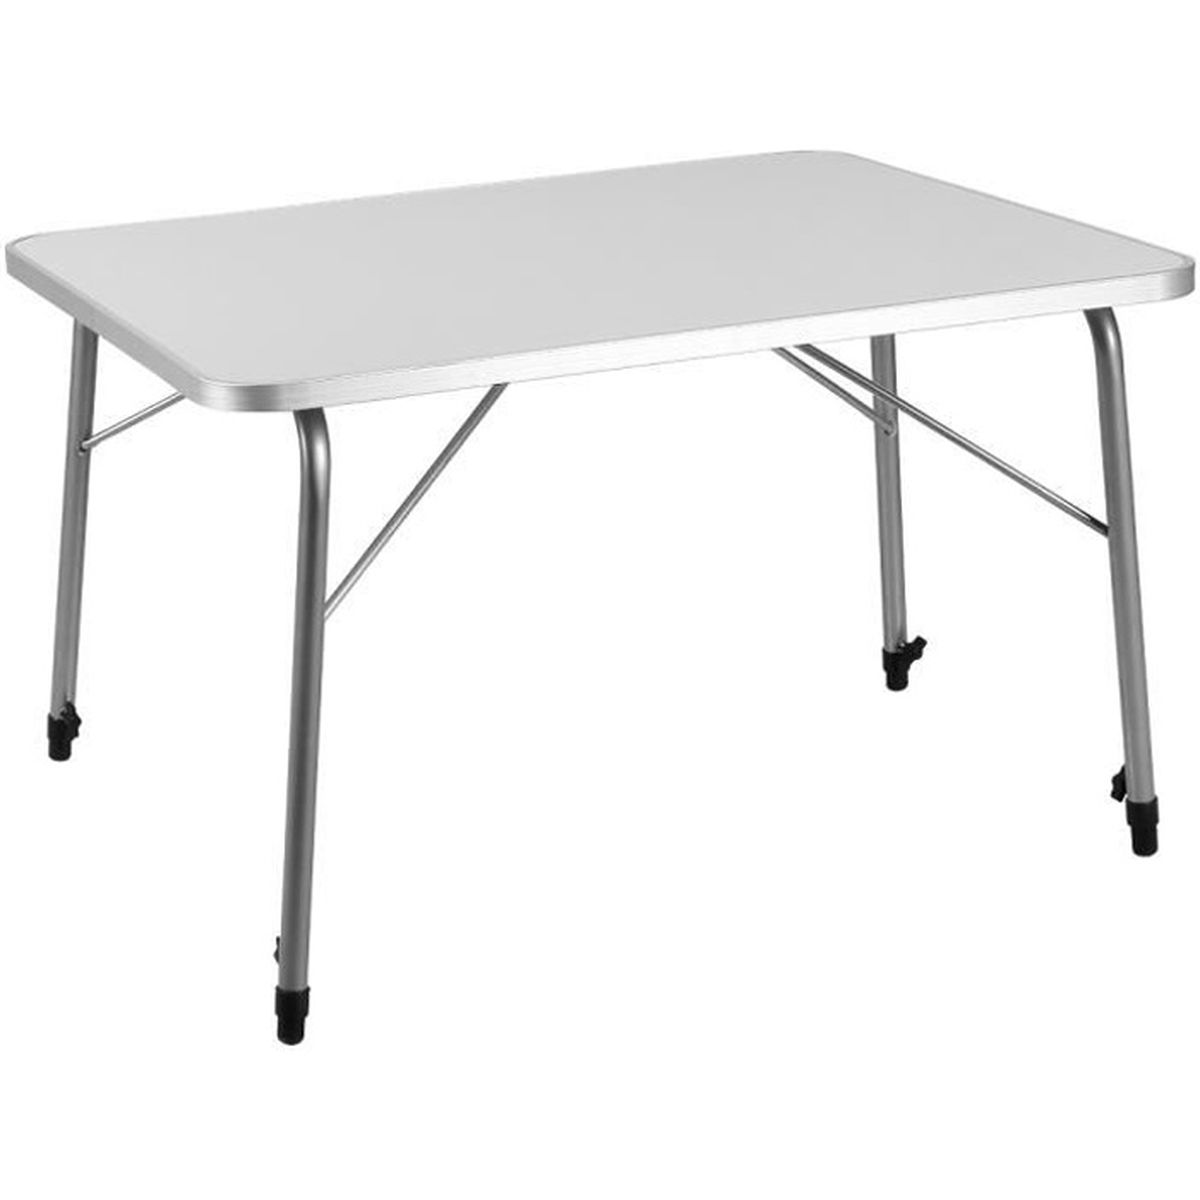 Royal Pliante Table De Camping Picnic Outdoor BBQ aluminium réglable en hauteur